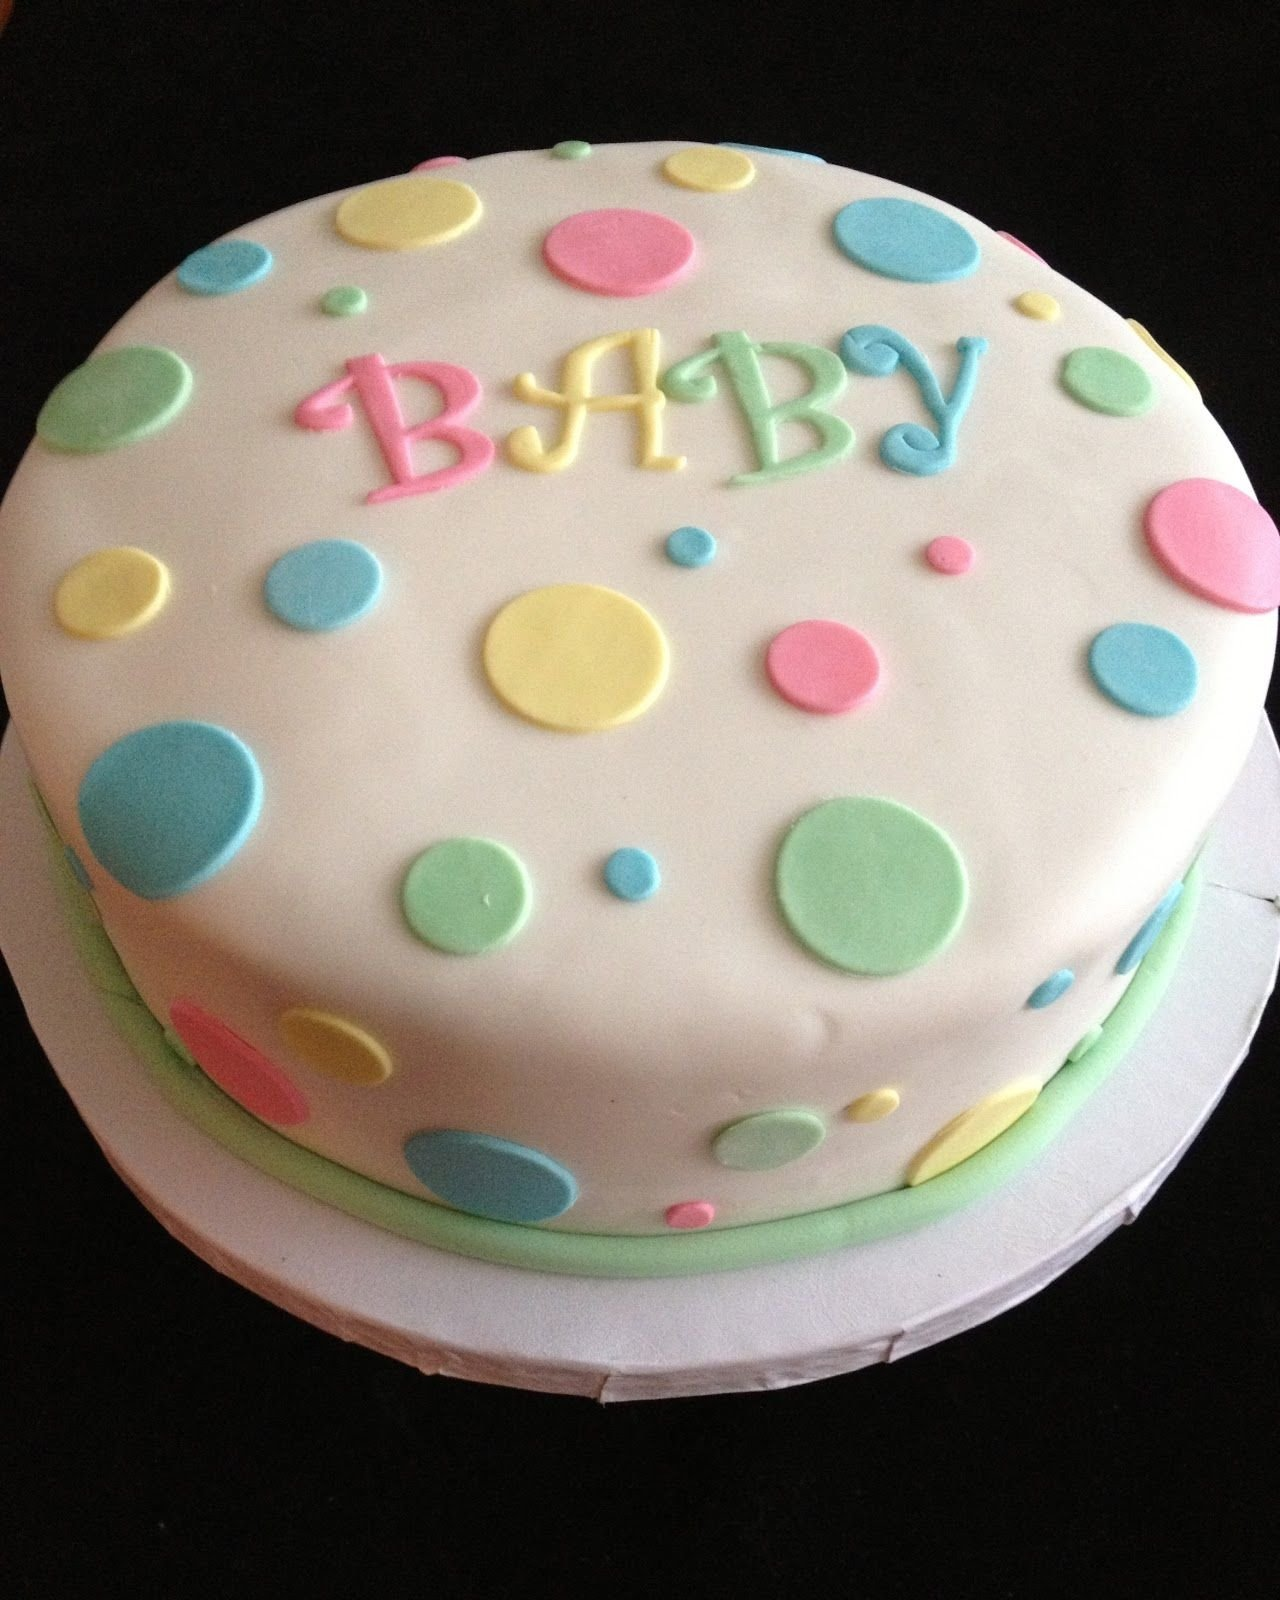 10 Wonderful Ideas For Baby Shower Cakes easy baby shower cake ideas unofficial shot of the cake i caught 2020